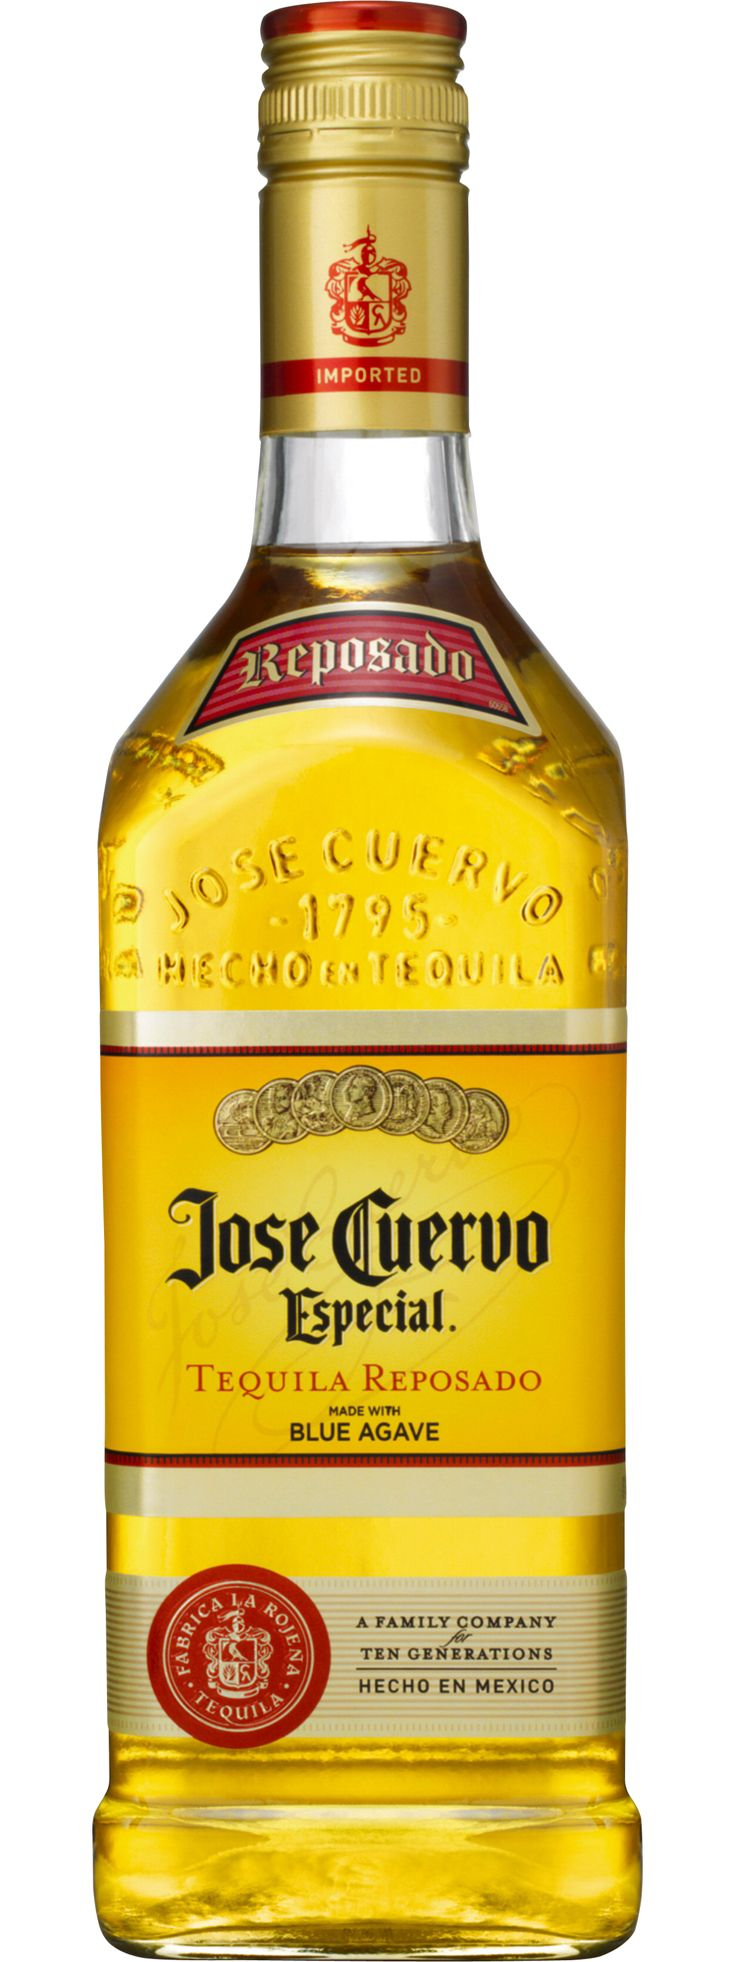 """Jose Cuervo you are a friend of mine..."" Everyone knows that alcohol is the reason behind so many of life's mistakes, but something about it just keeps us coming back. A bottle or so of this stuff is what led Hayden and Laney into uncharted territory on graduation night."